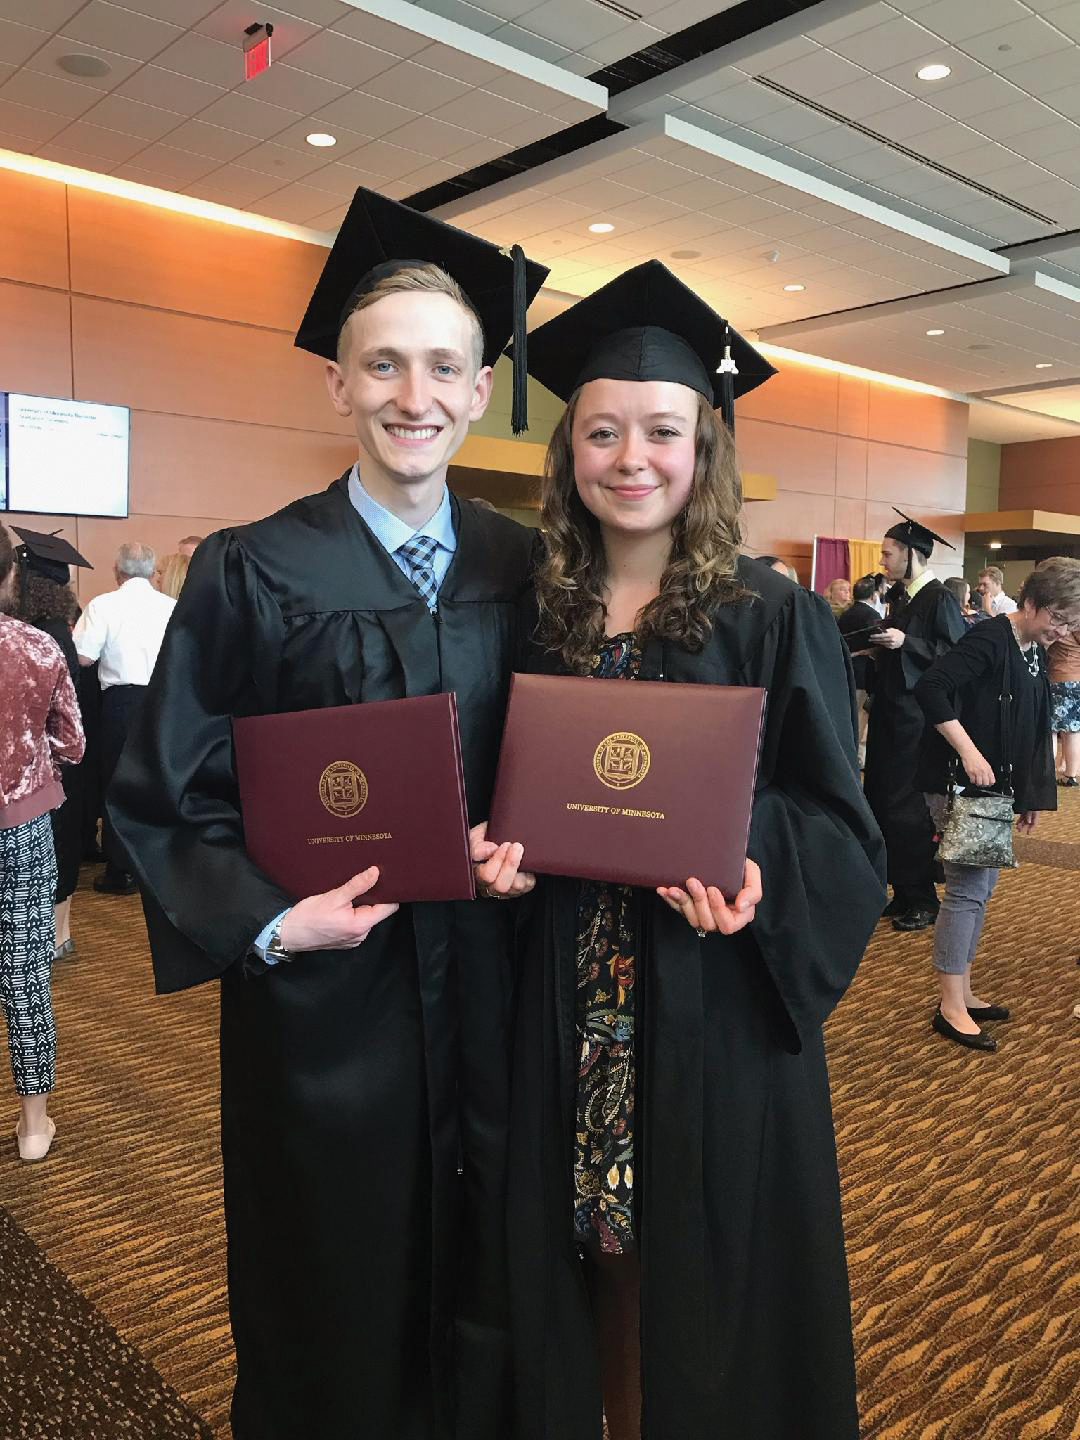 University of Minnesota alums Brady and Cassie Zell smile in commencement robes while holding their diplomas